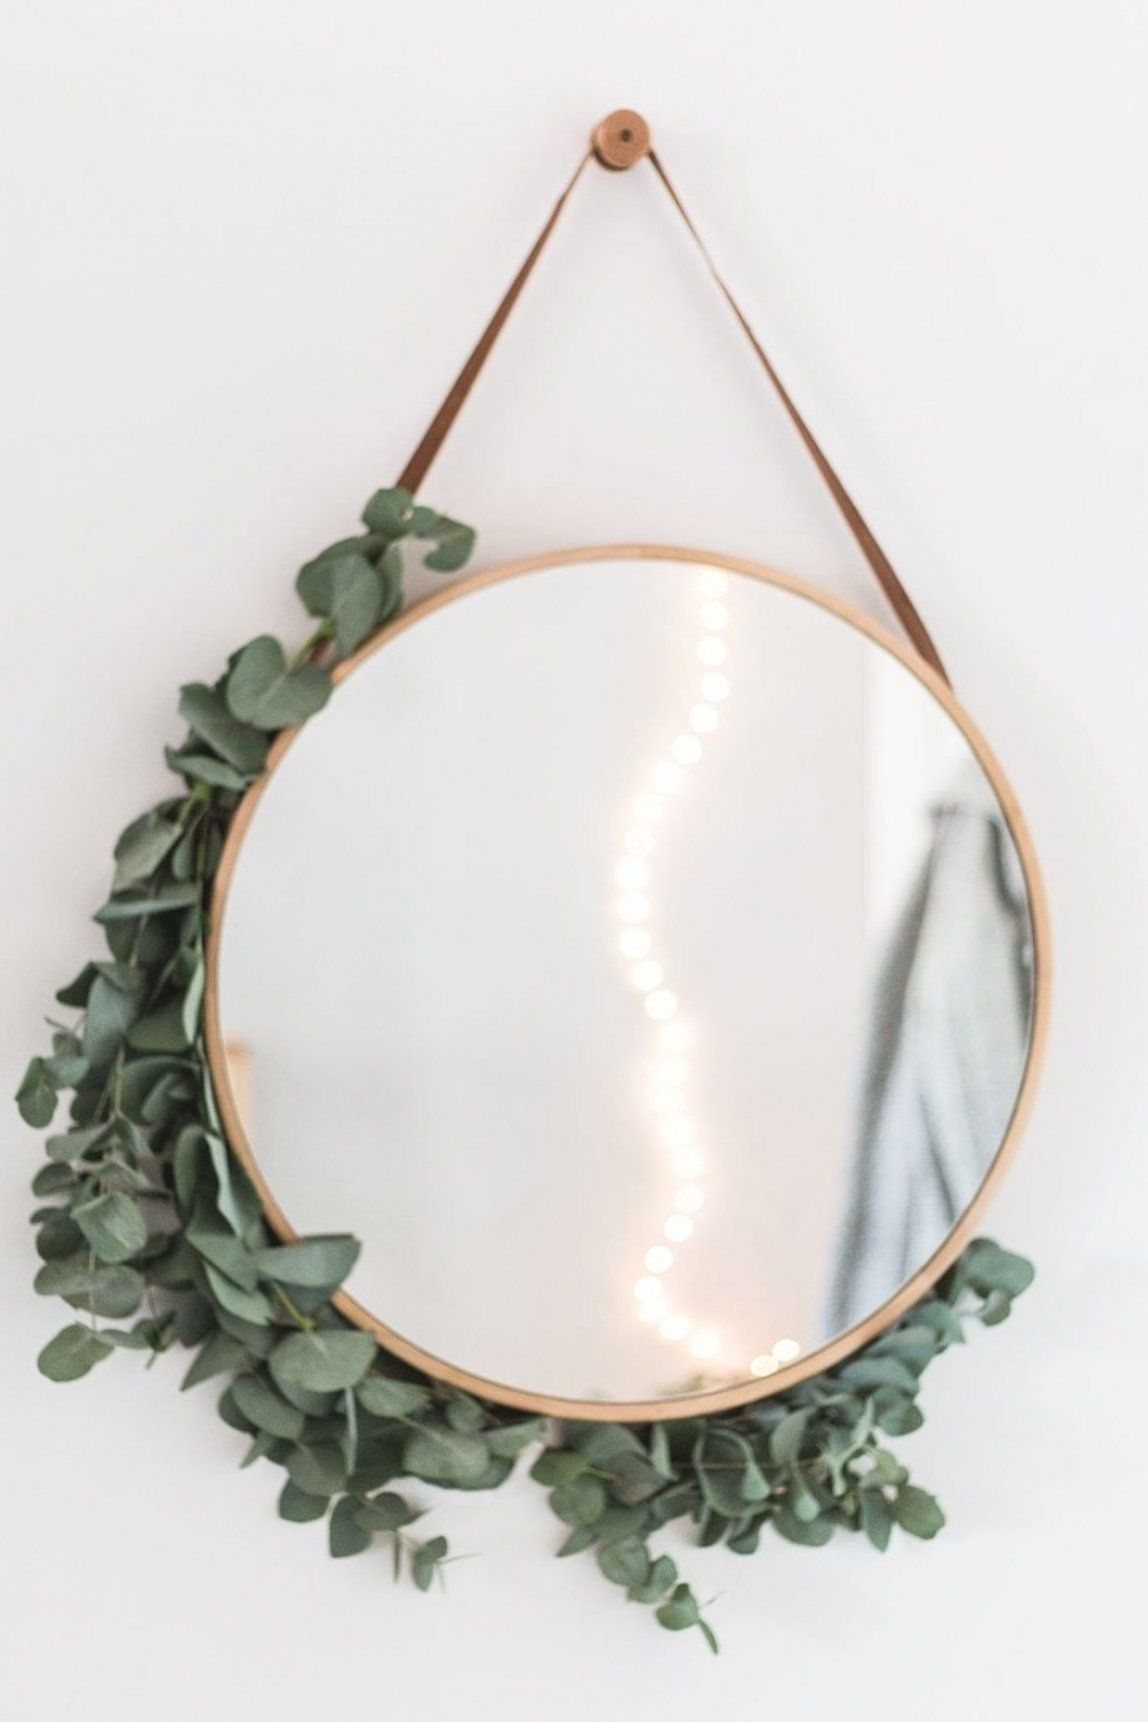 Create A Warm And Welcoming Entrance For Your Home With These Tips Click Through To Make This Diy Eucalyptus Framed Mirror In 2020 Deko Kreative Ideen Deko Spiegel